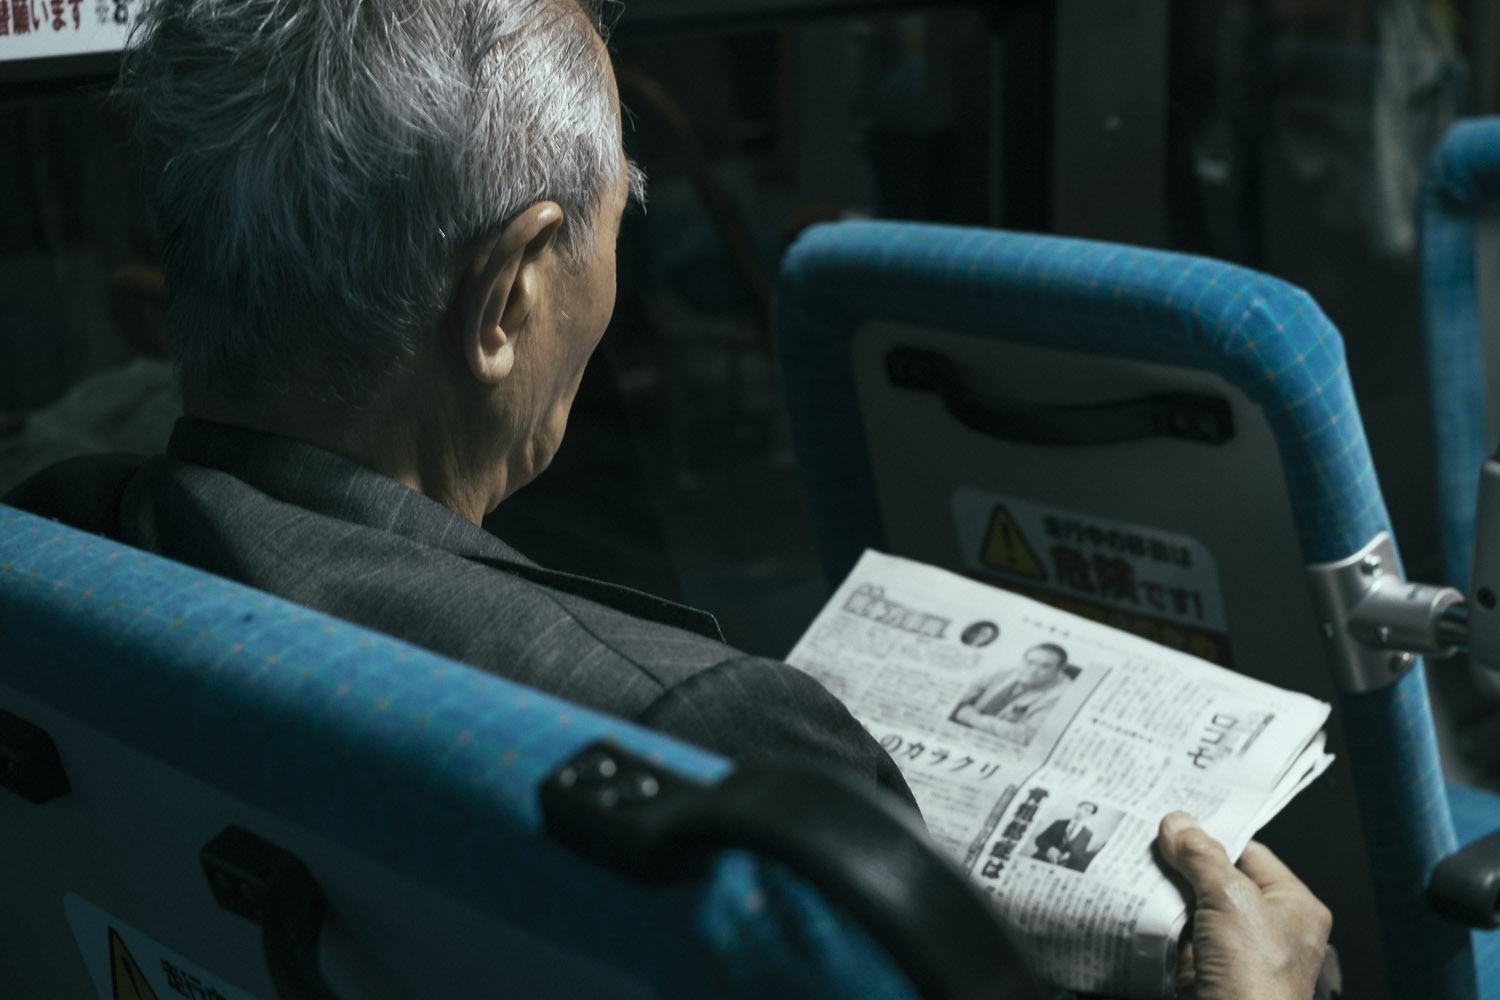 Older gentleman reading the paper in a Kyoto bus.